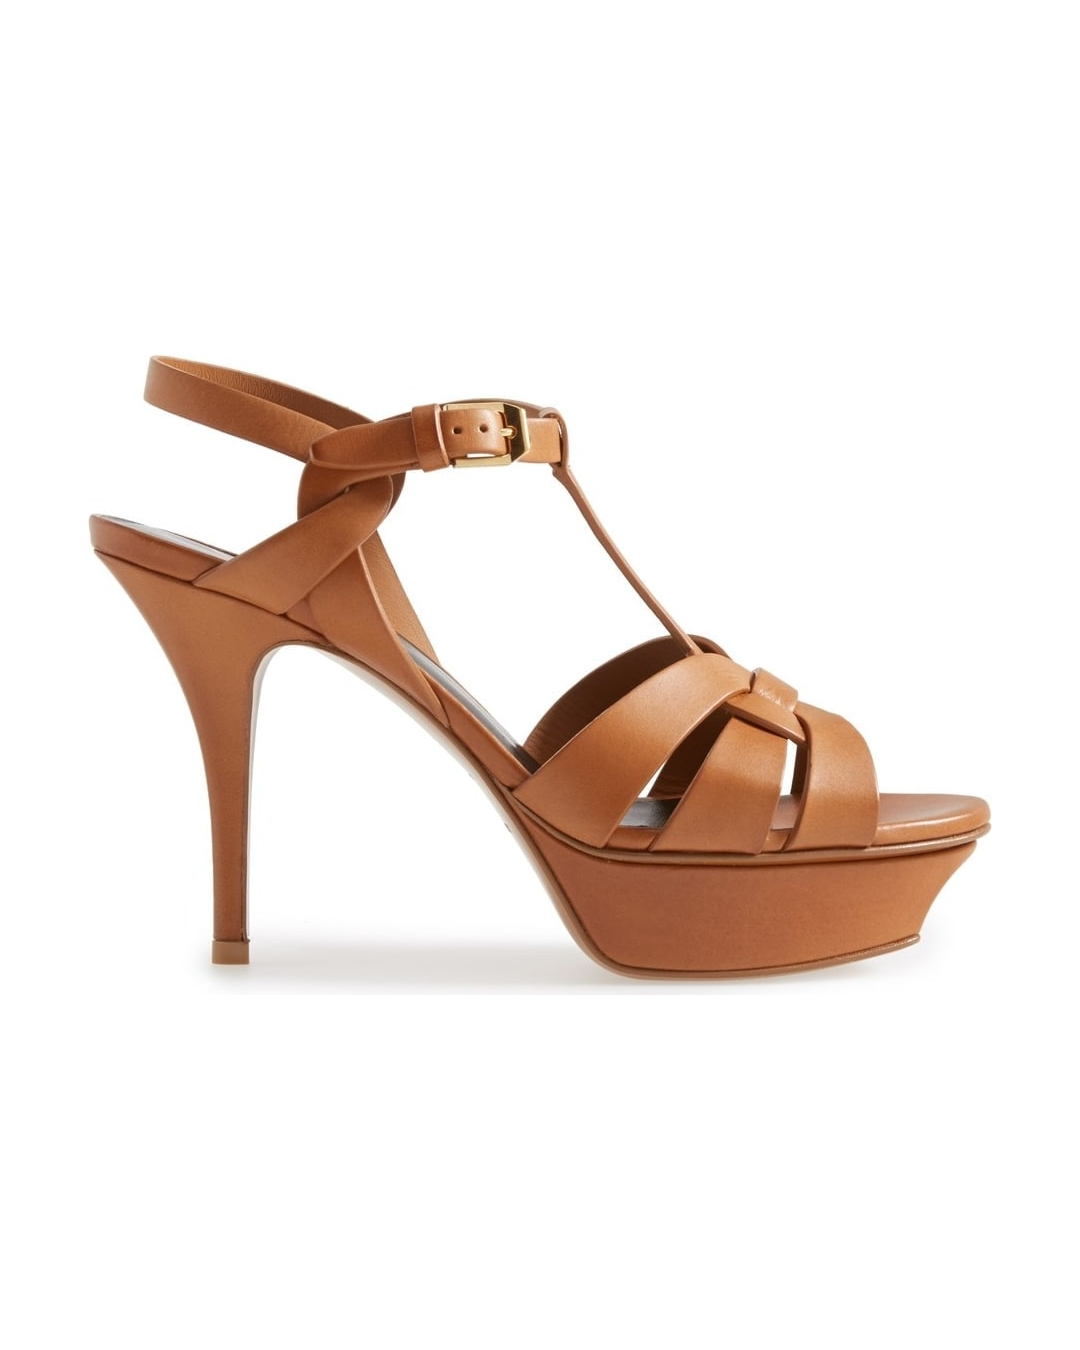 cce059bc72f Tribute T-Strap Platform Sandal 105mm Reviews